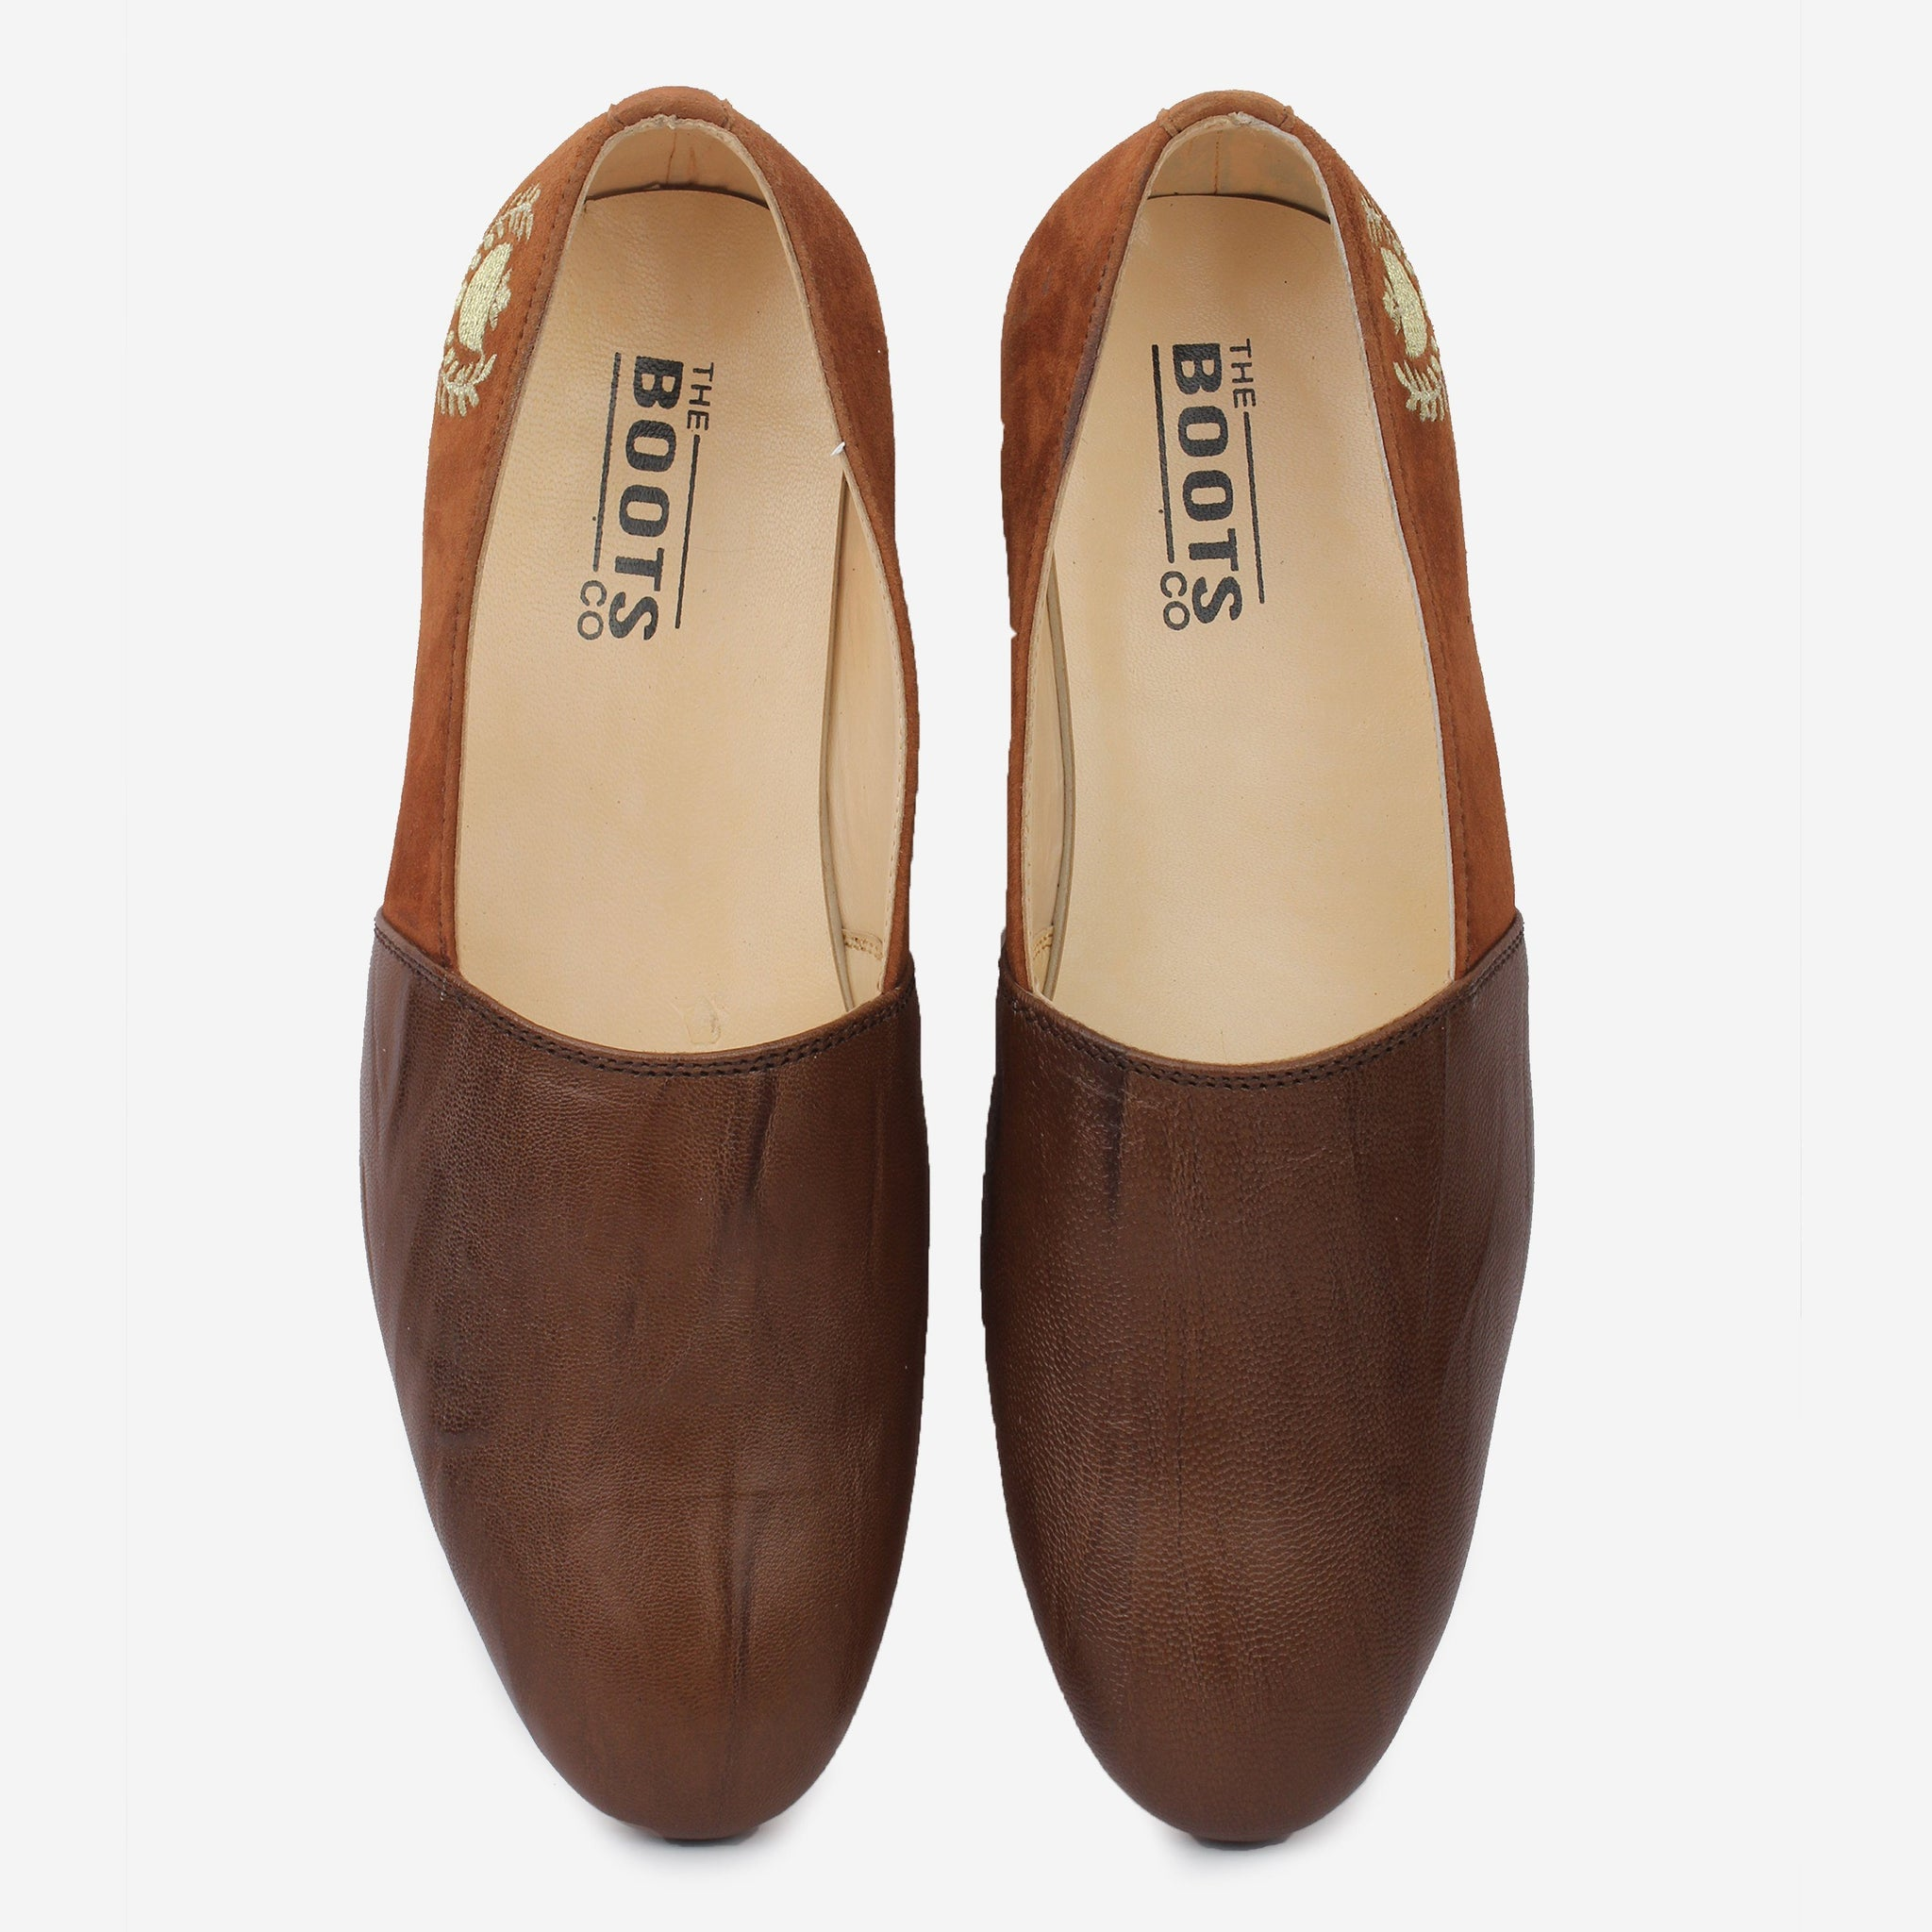 Saros Loafer Brown Thebootsco